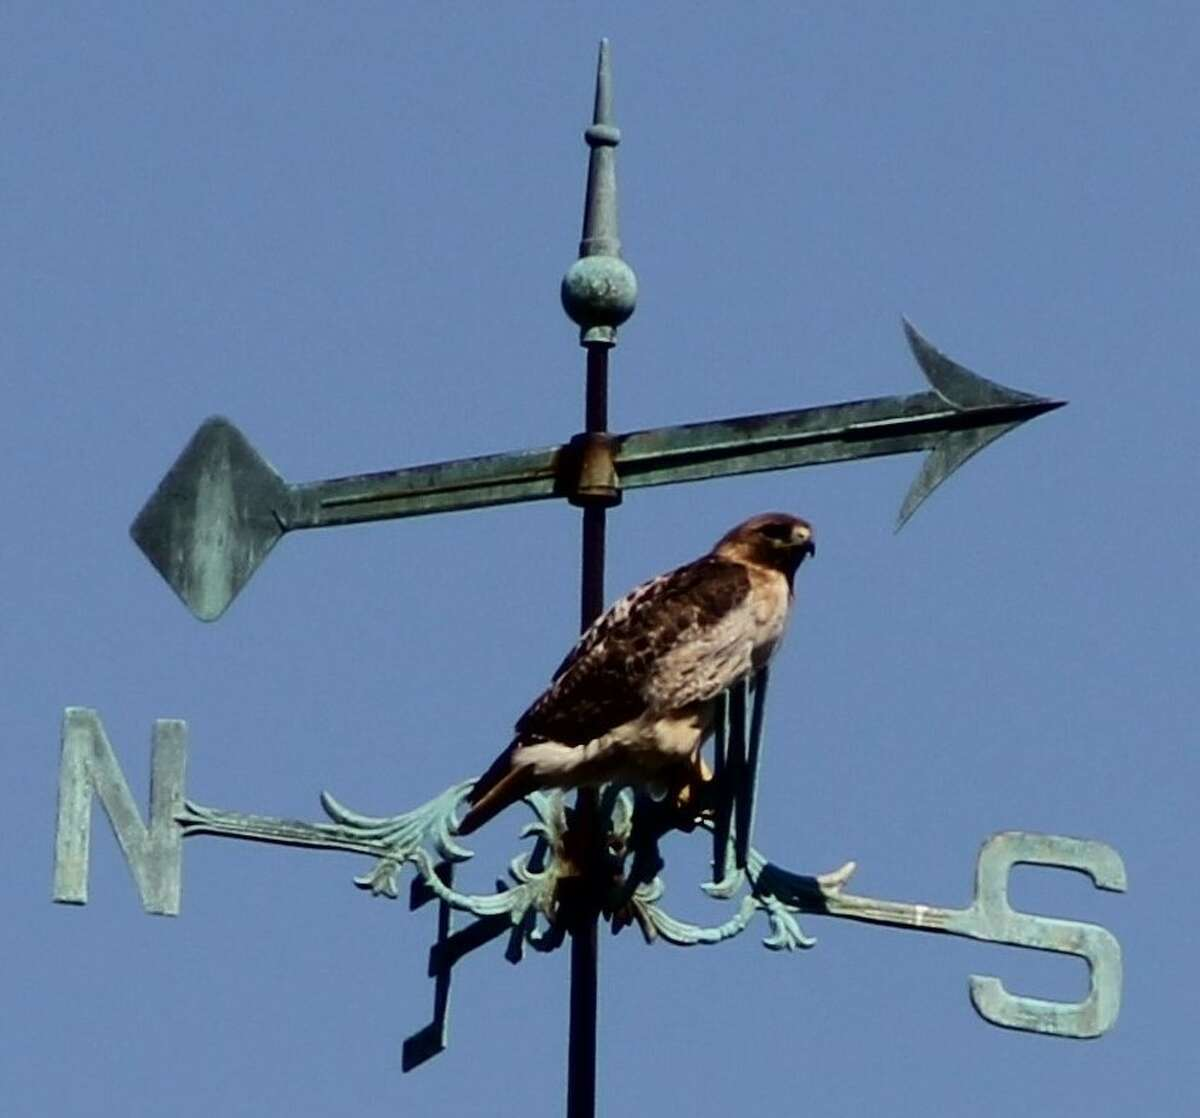 """During Sunday's """"Run for the Fallen"""" event in Albany's Lafayette Park Gene Loparco of Colonie captured this image of a hawk perched on the former Albany Academy's weathervane in Academy Park."""